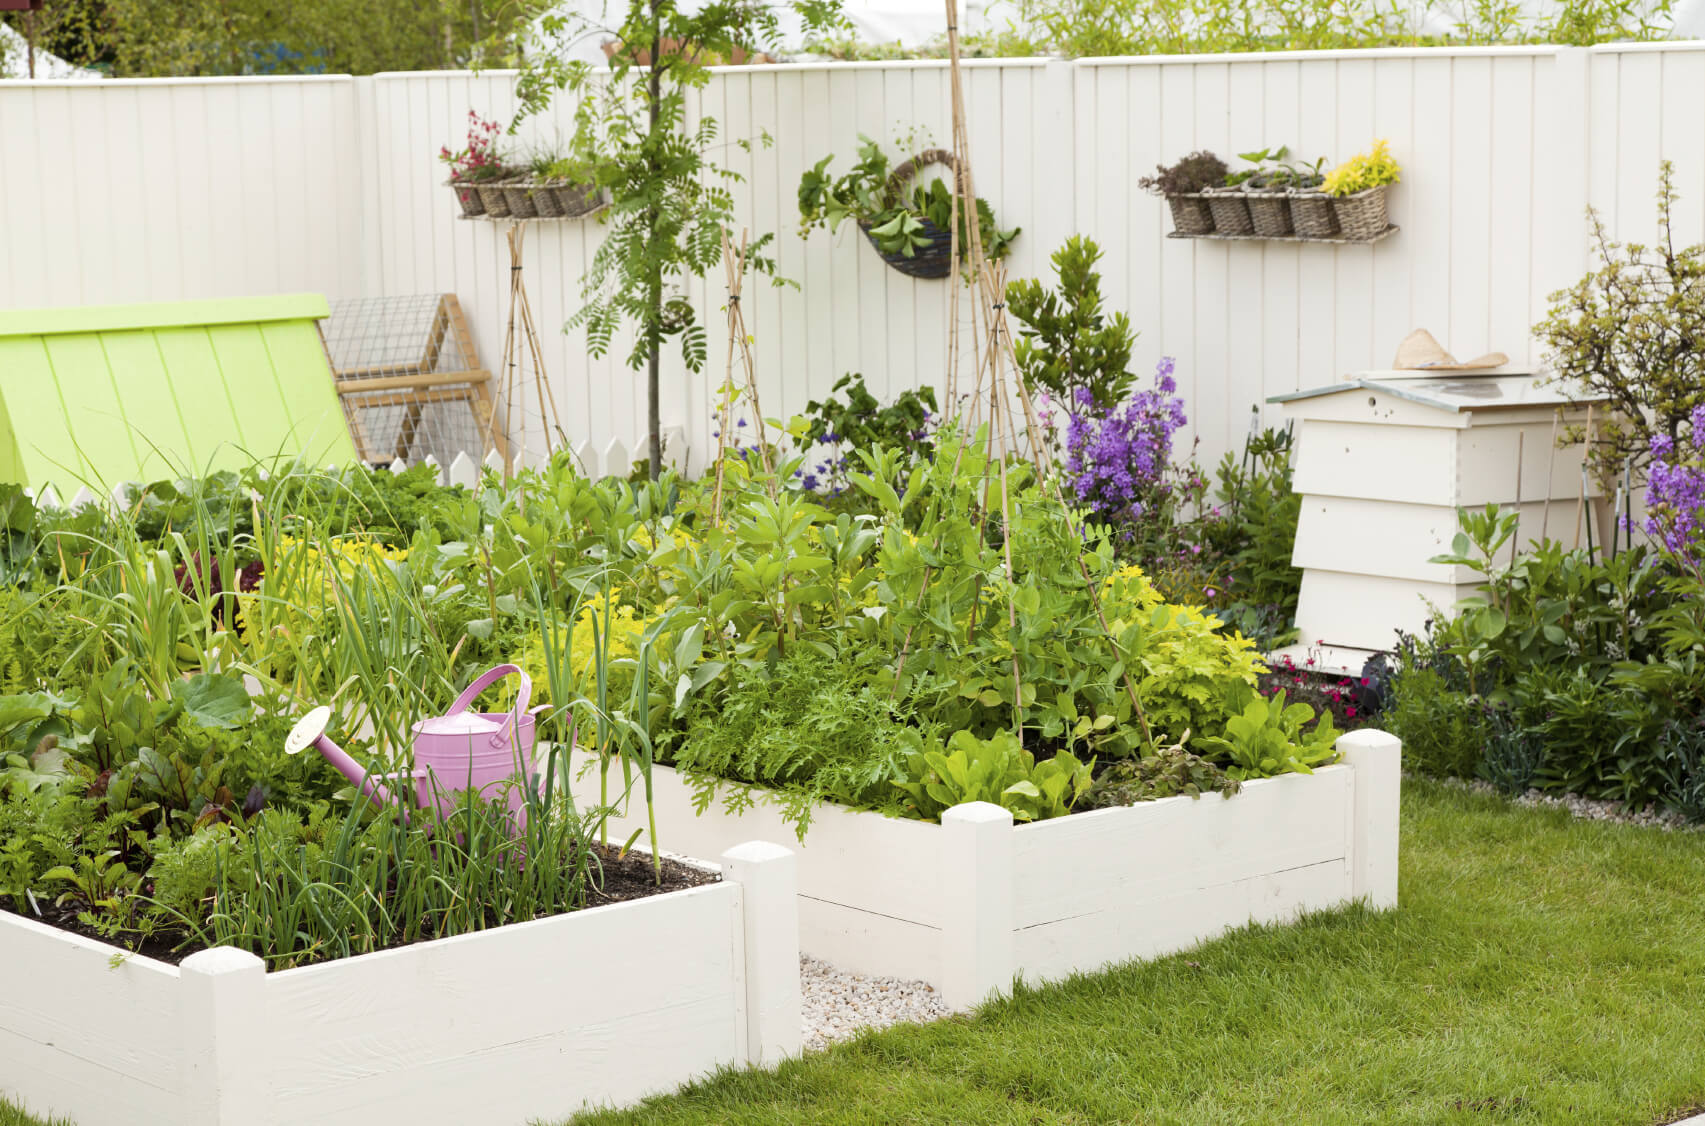 Ways to make your vegetable garden beautiful - How A Fruit And Vegetable Garden Be Made Beautiful With These Cool Ideas